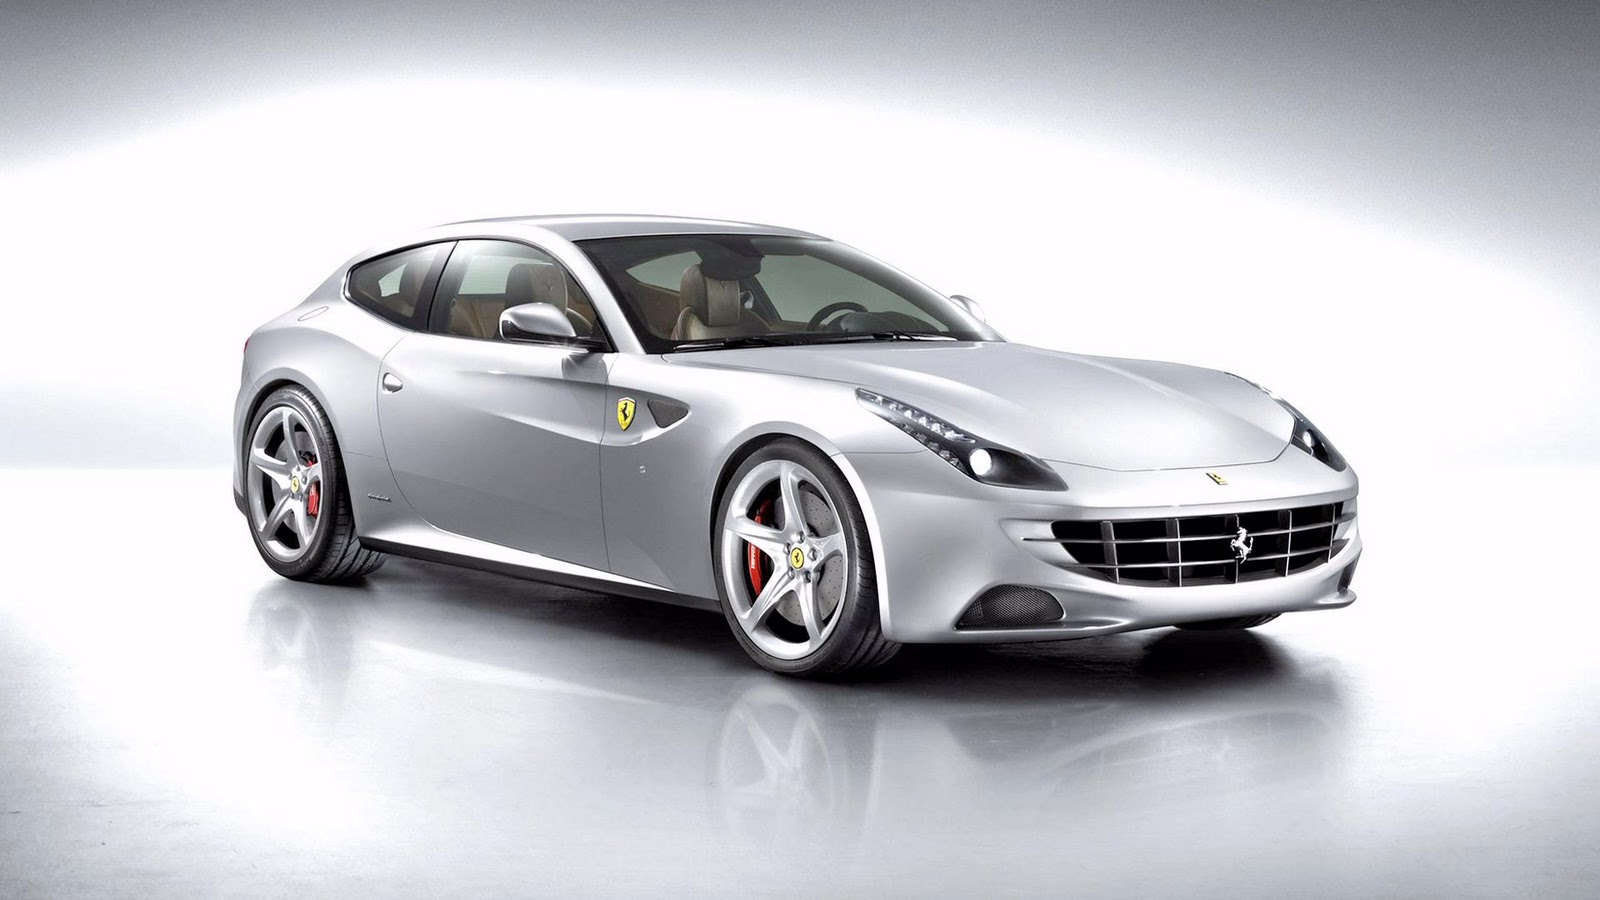 http://3.bp.blogspot.com/-oUnk-3VDzFM/TpVY_5AVfAI/AAAAAAAABQc/ZK6TIJLNCeE/s1600/2012_ferrari_wallpapers_car_1_wallpape.in.jpg